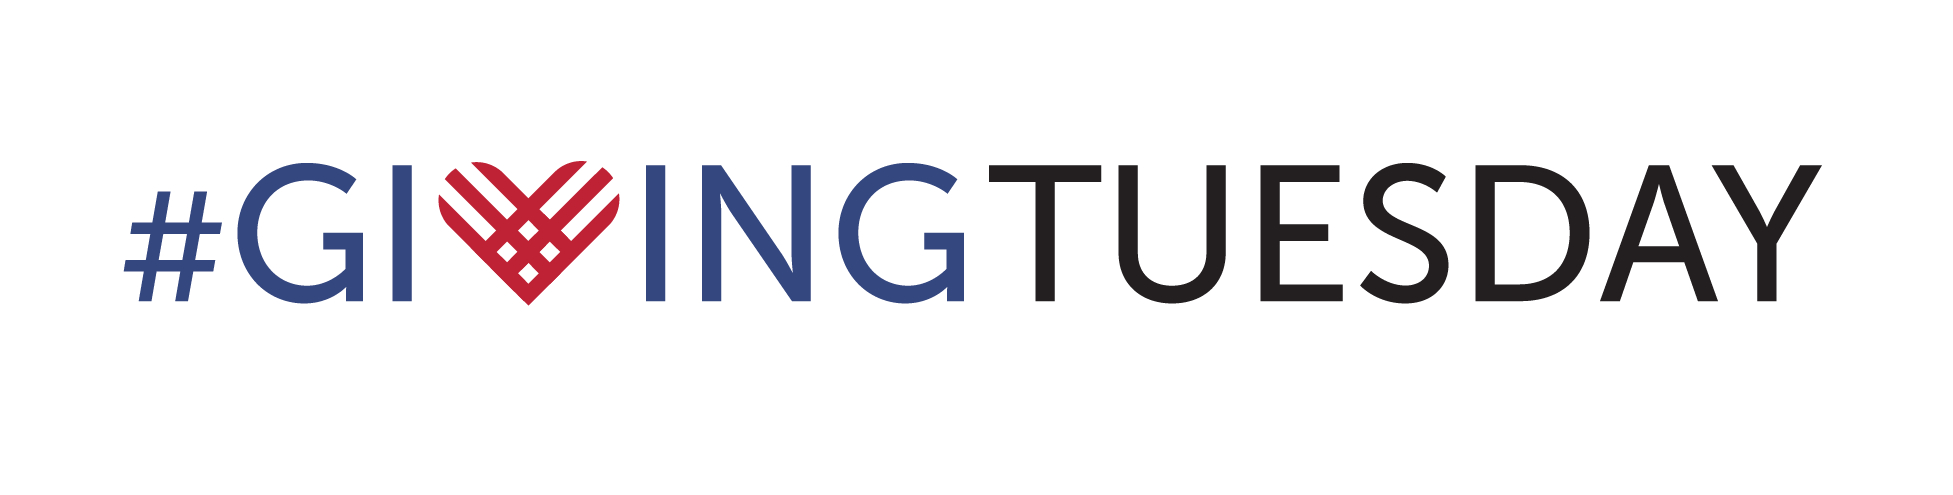 Image result for giving tuesday logo""